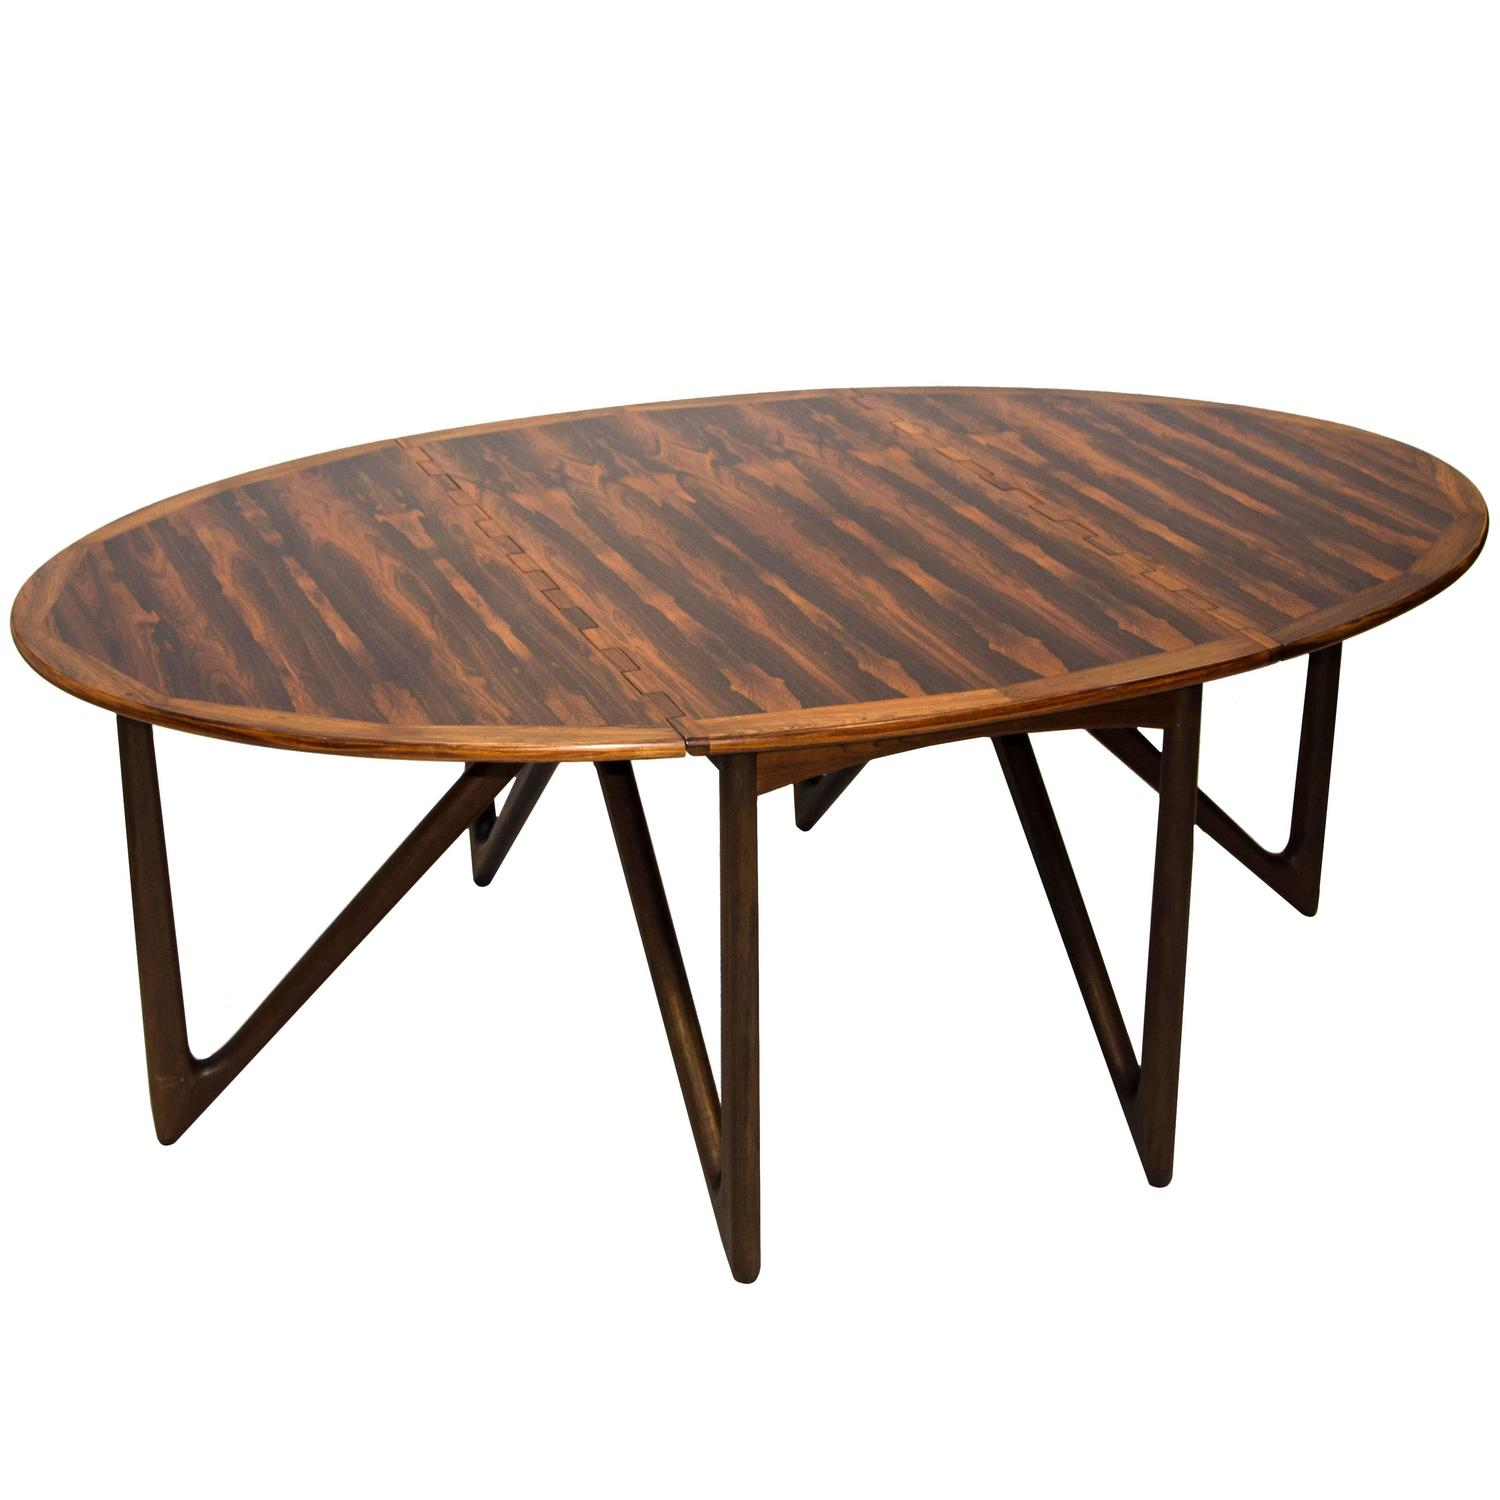 Danish Mid Century Modern Occasional Side Coffee Table Rosewood: Danish Rosewood Oval Dining Table By Kurt Østervig For